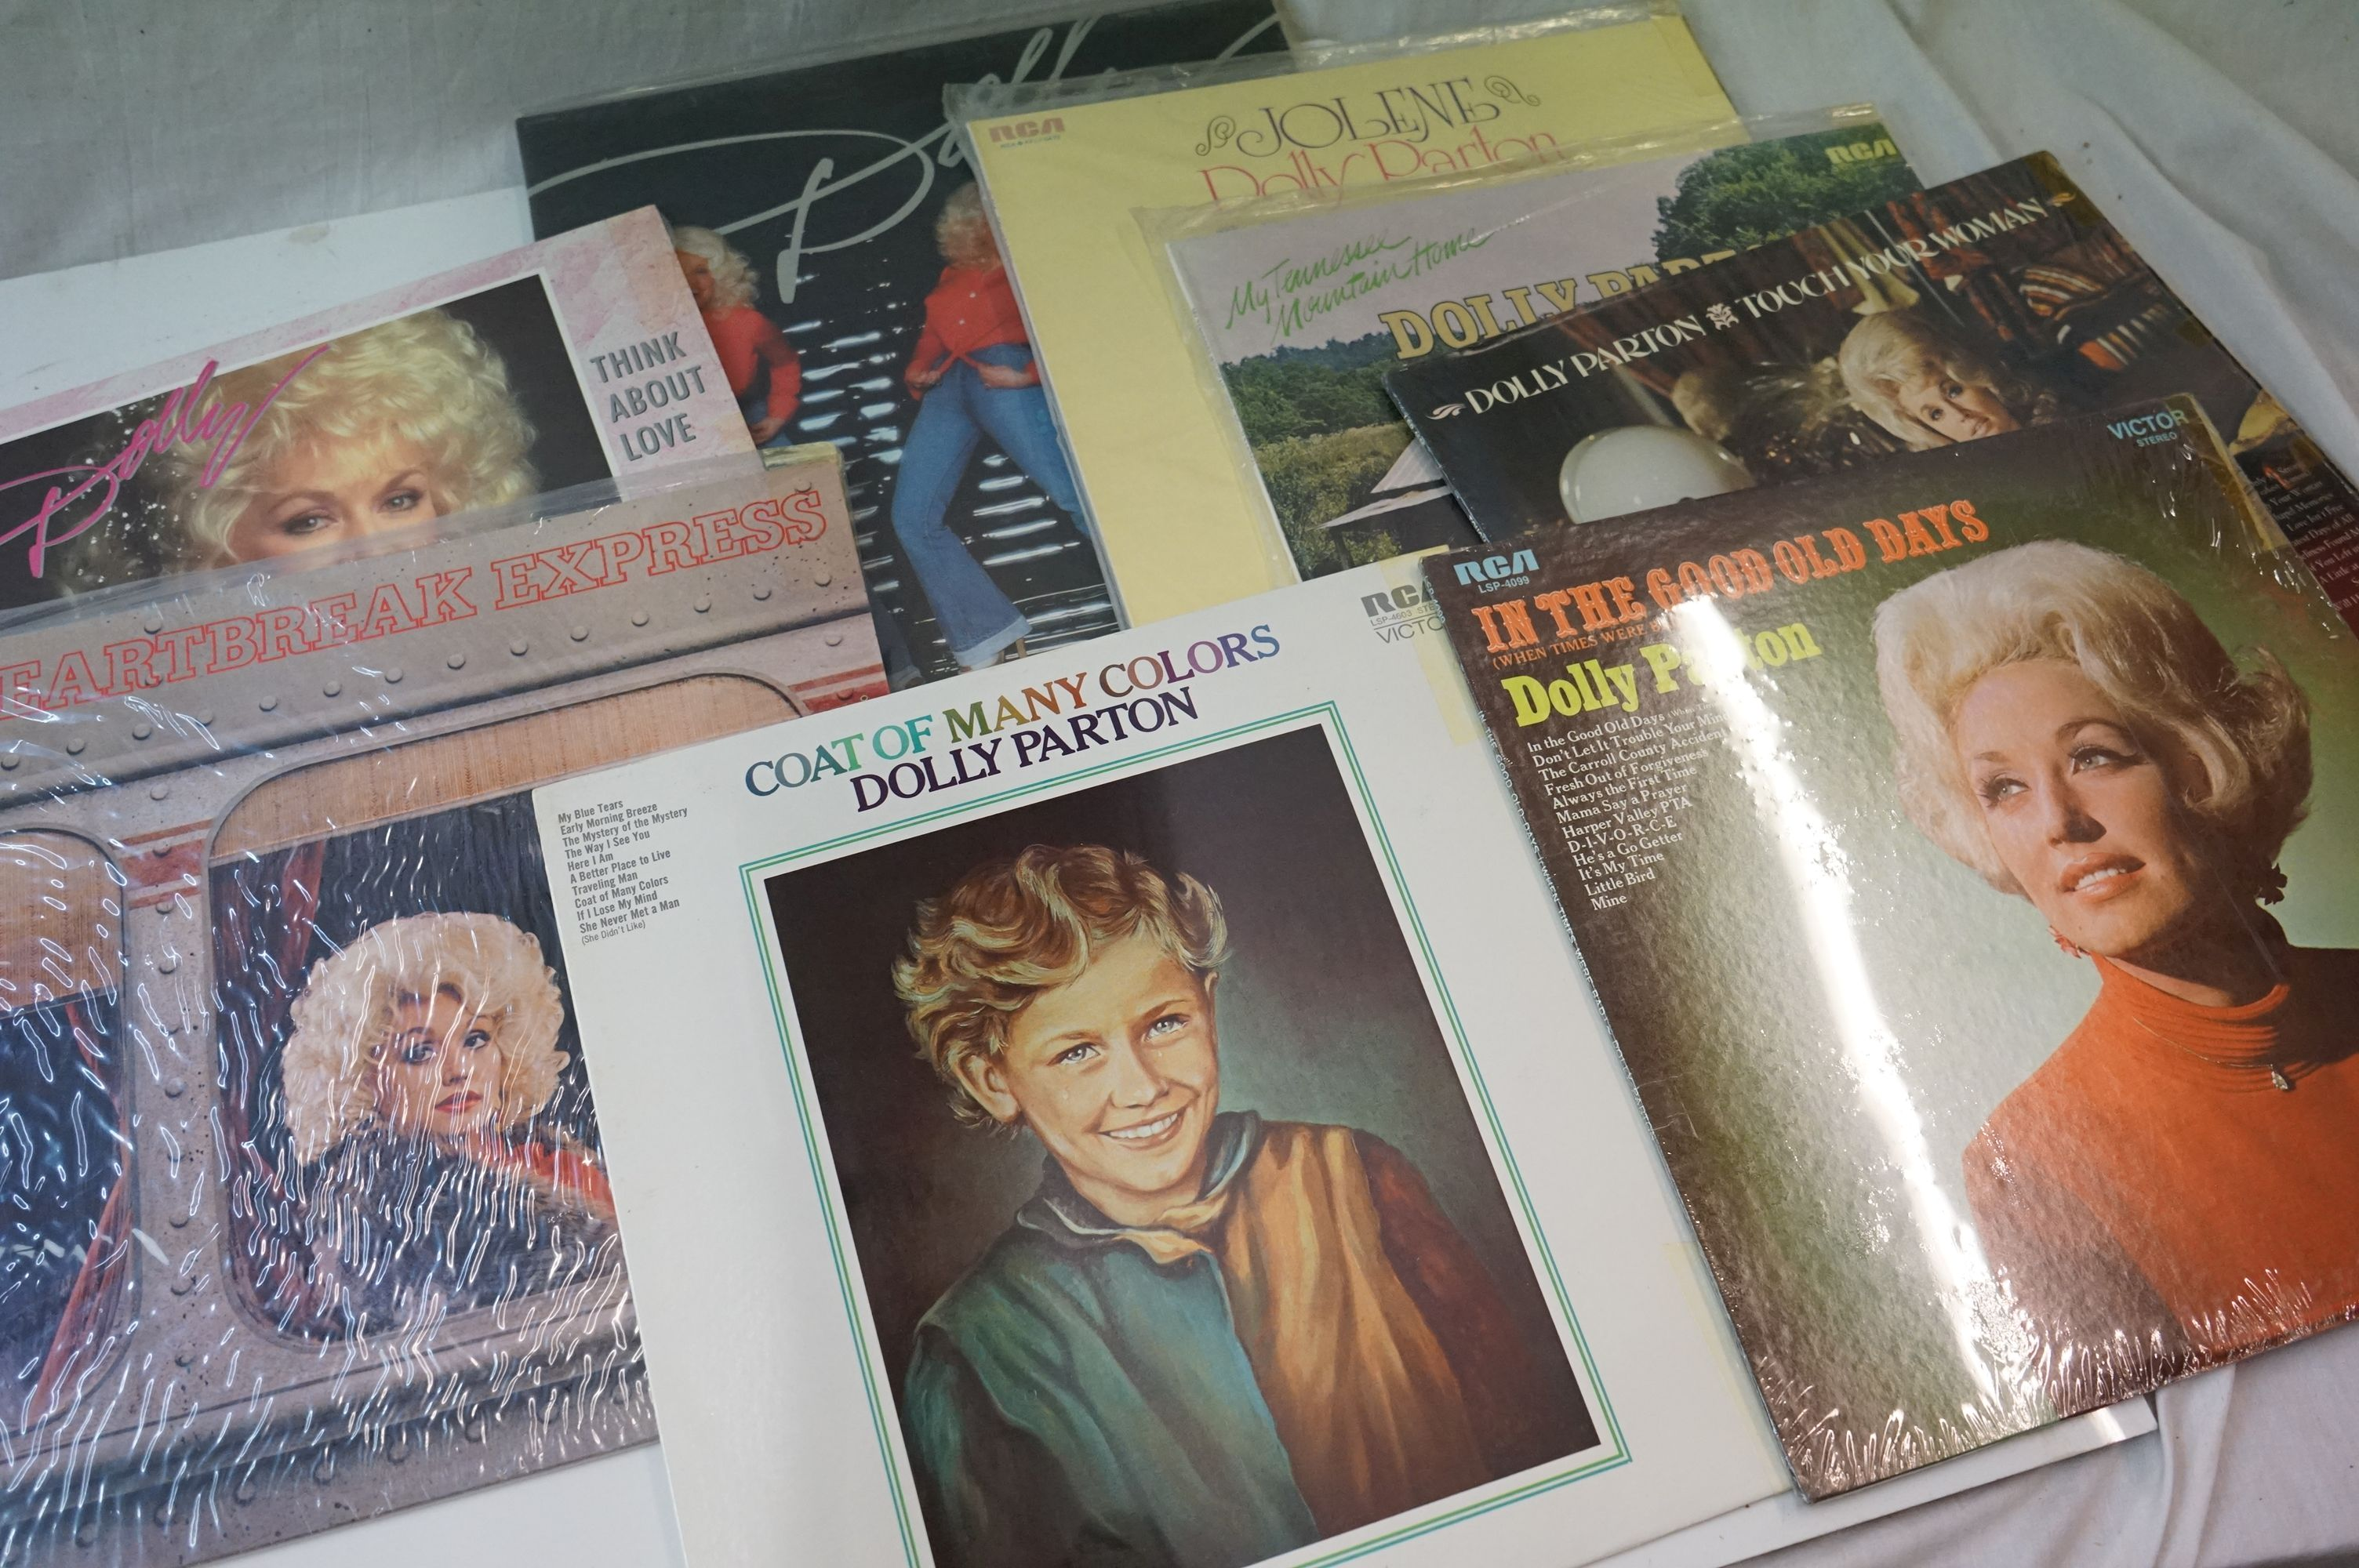 Vinyl - 220 LPs to include Pop, Rock, Easy Listening etc, sleeves and vinyl vg+ (two boxes) - Image 2 of 5